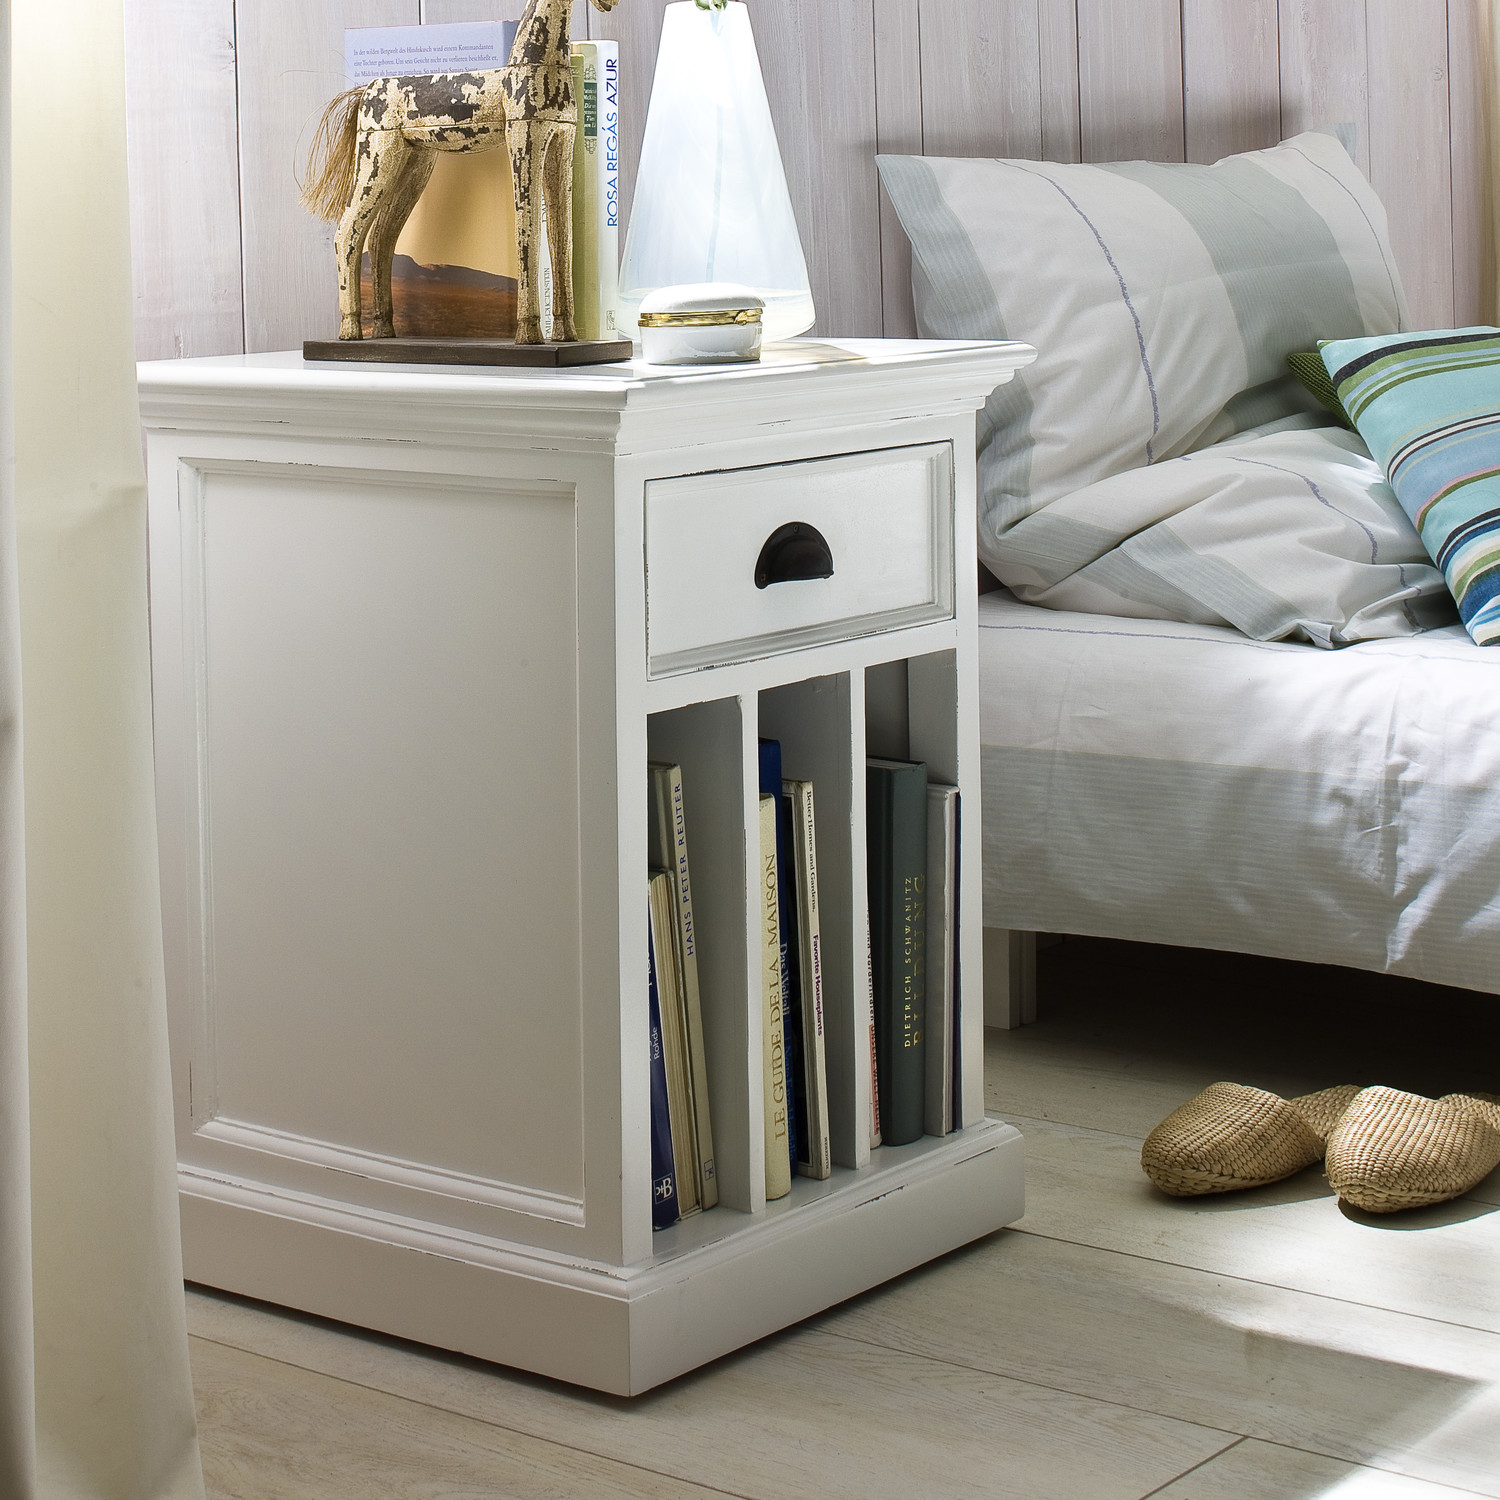 Narrow Nightstand | Cheap Nightstands | Nightstand with Baskets